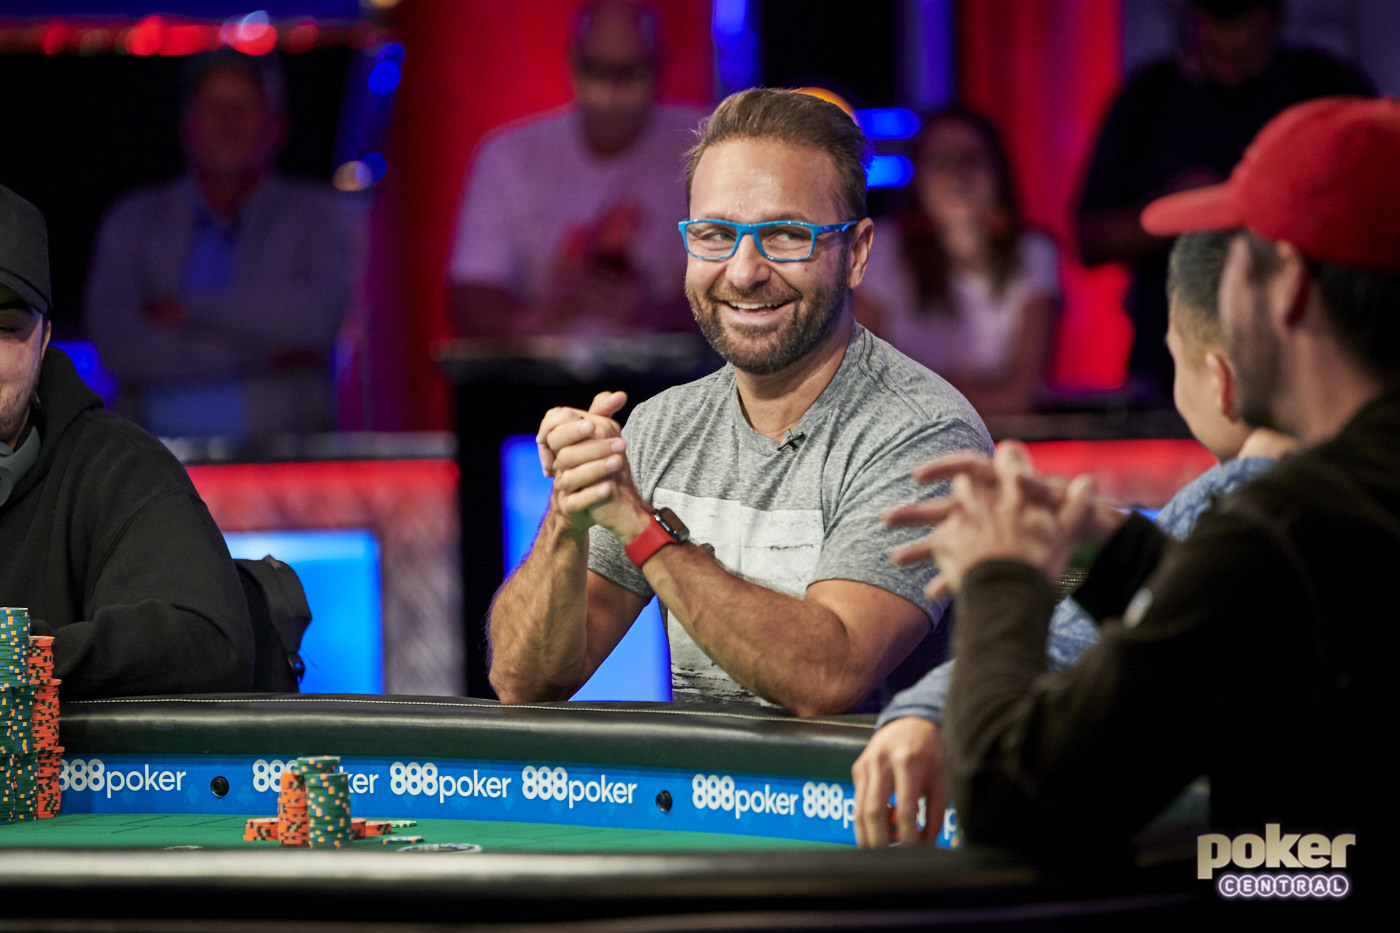 Daniel Negreanu was all smiles despite busting in sixth place at the final table of Event #1.